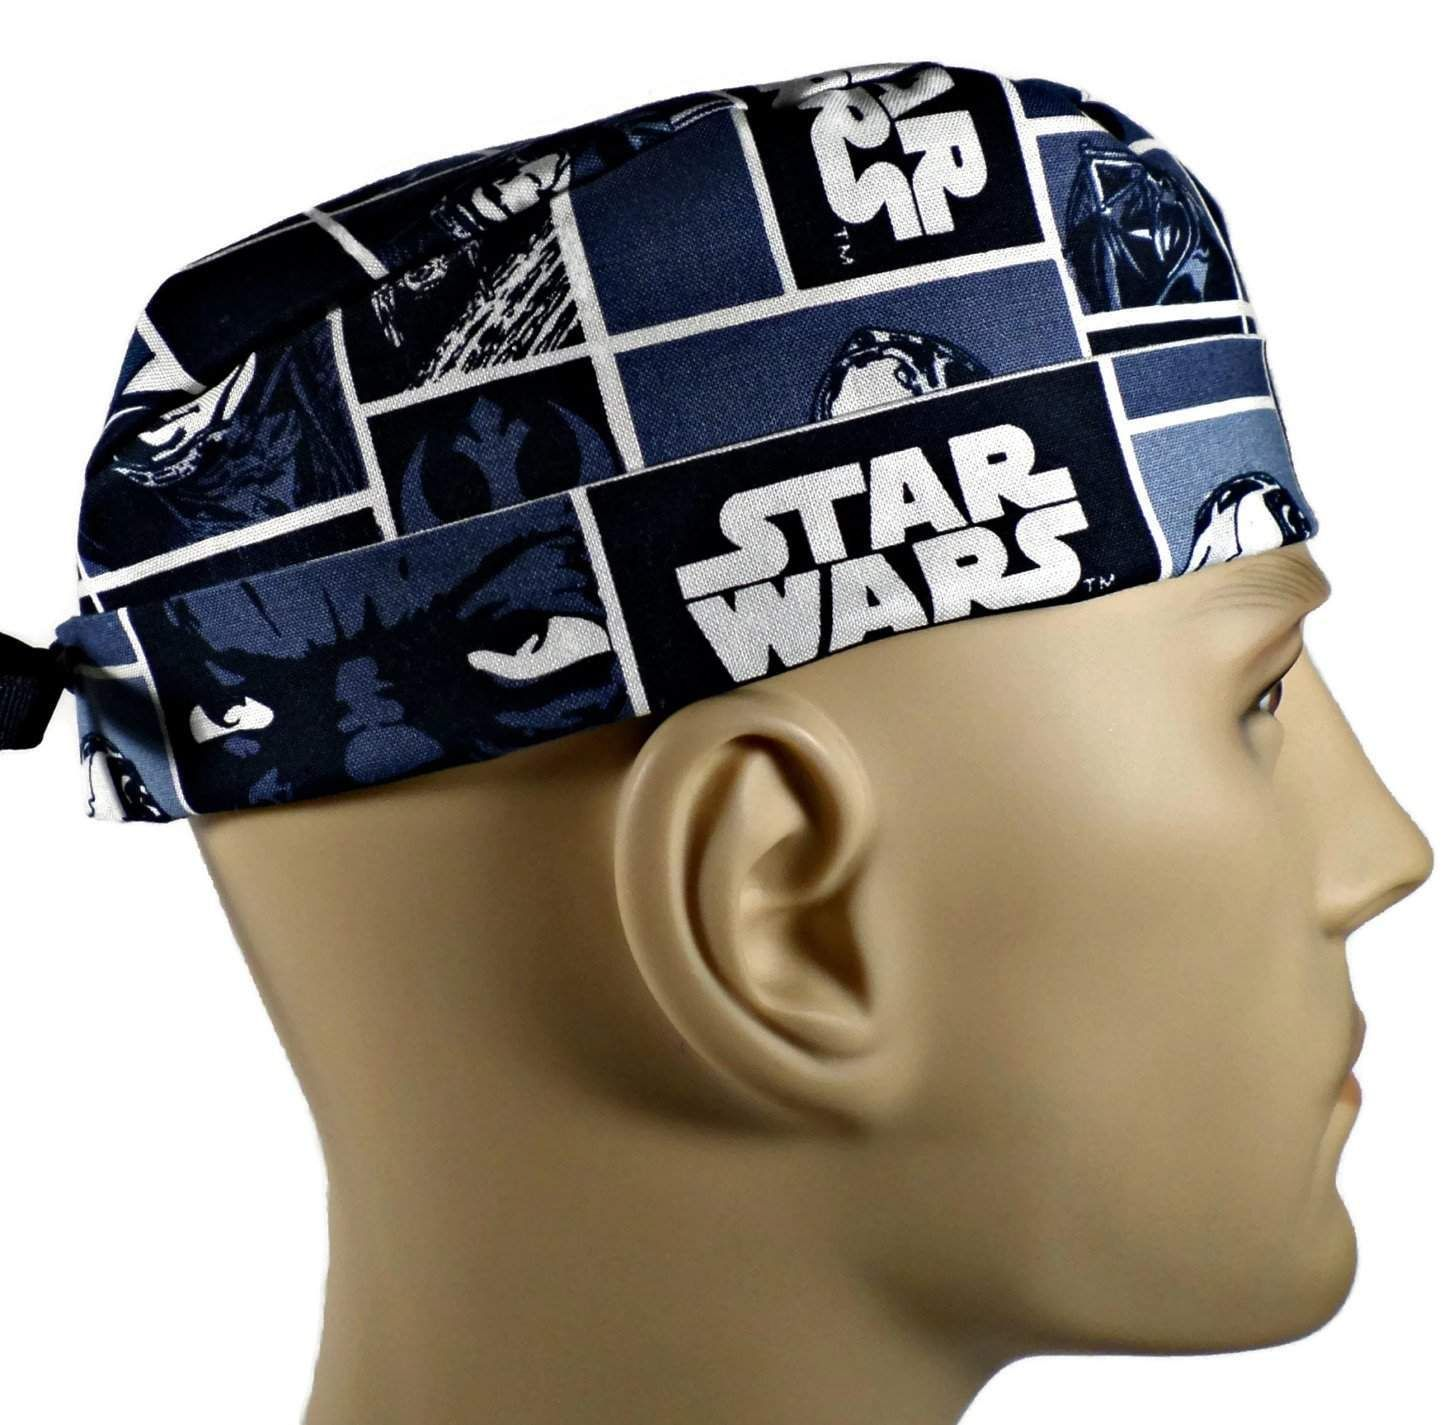 08aa4937832 Men s Adjustable Cuffed or Un-Cuffed Surgical Scrub Hat Cap in Star Wars  Squares